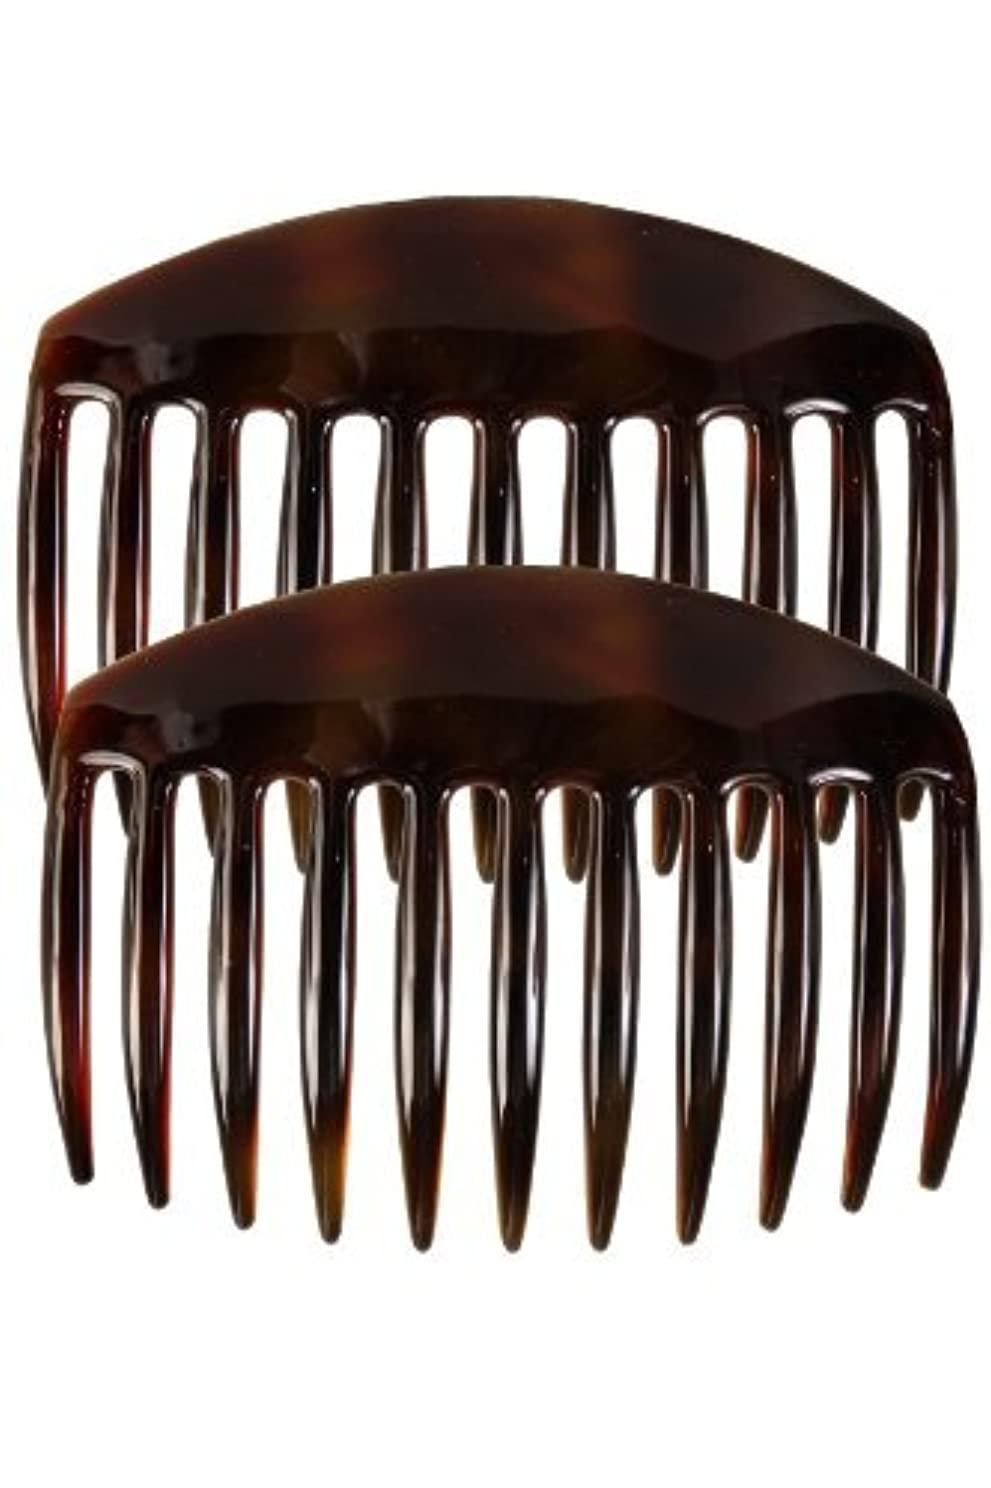 宣言する甘い口実Caravan French Tooth Back Comb Tortoise Shell Pair, Large.65 Ounce [並行輸入品]